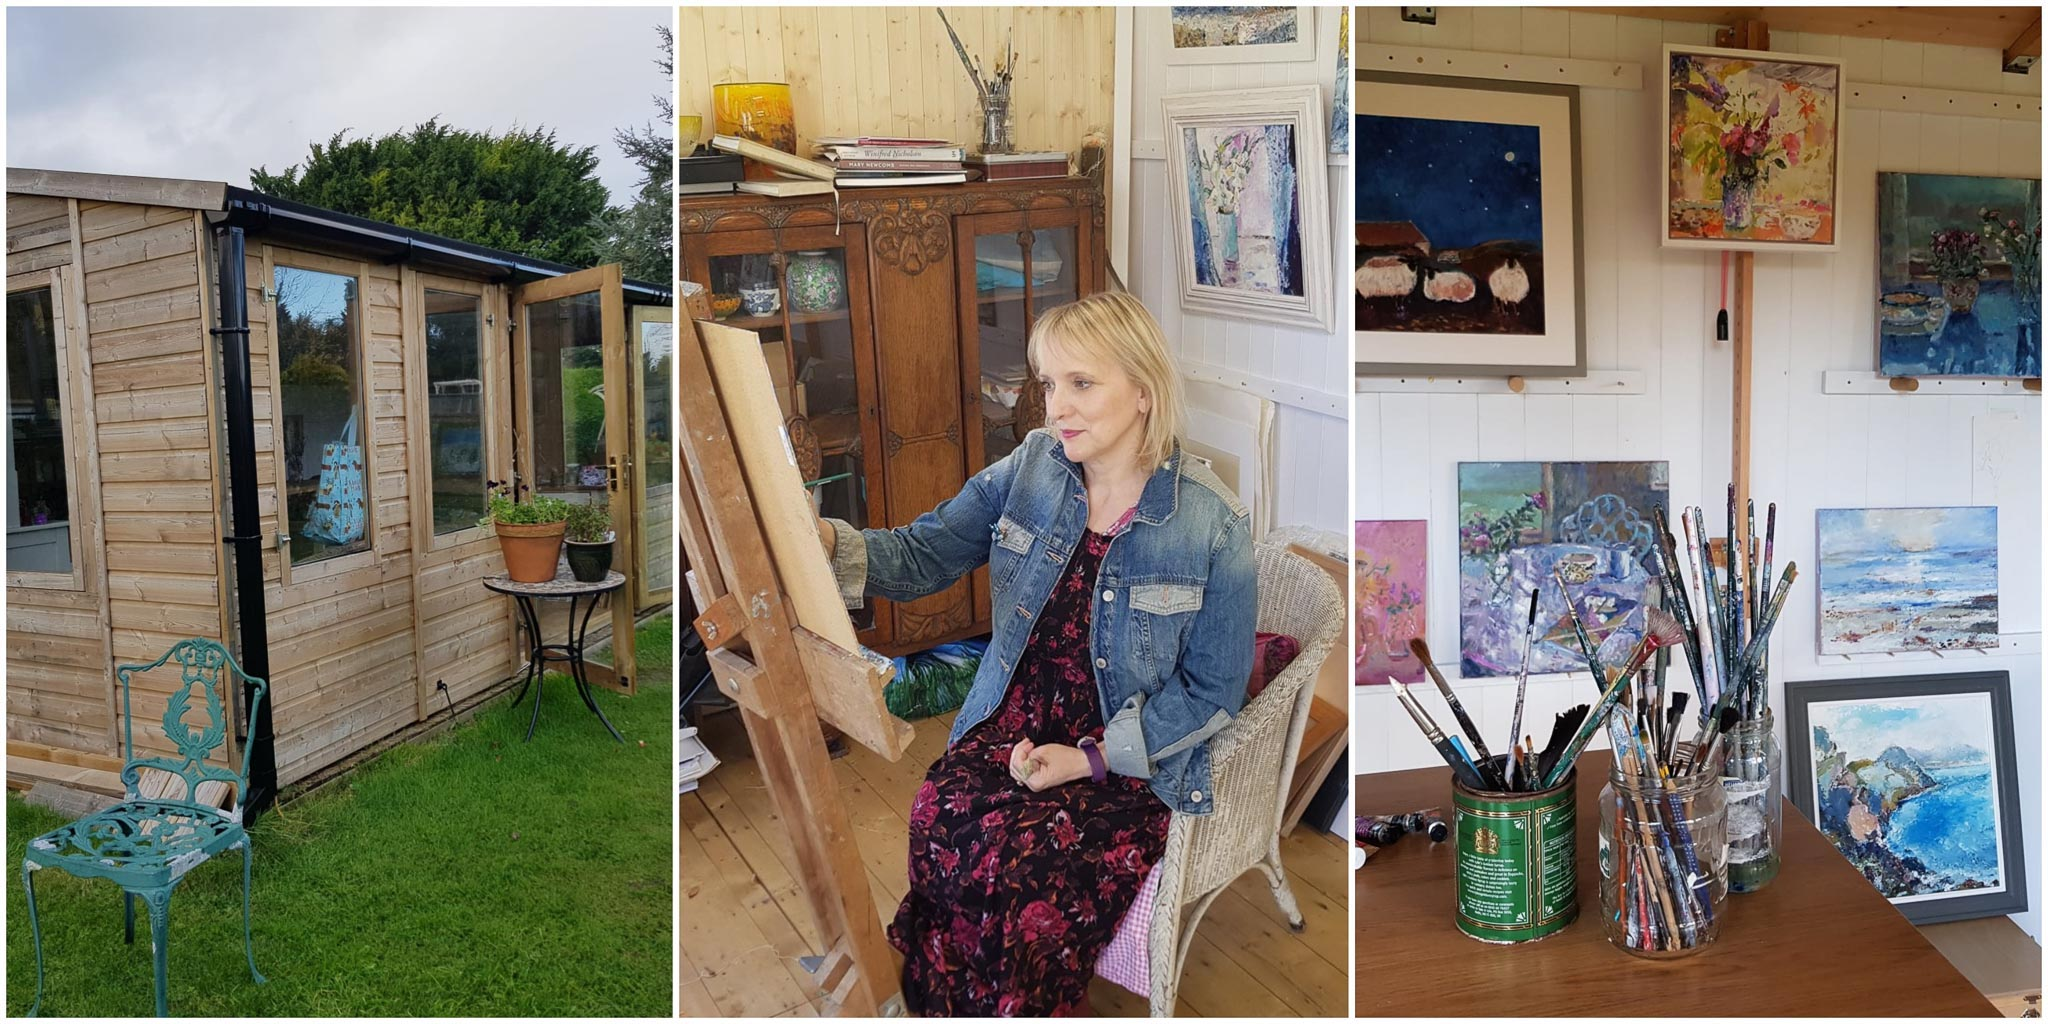 Original Art Cards and Prints by Judi Glover Art. The picture shows Judi Glover painting on an easel in her studio in the New Forest, Hampshire, UK.